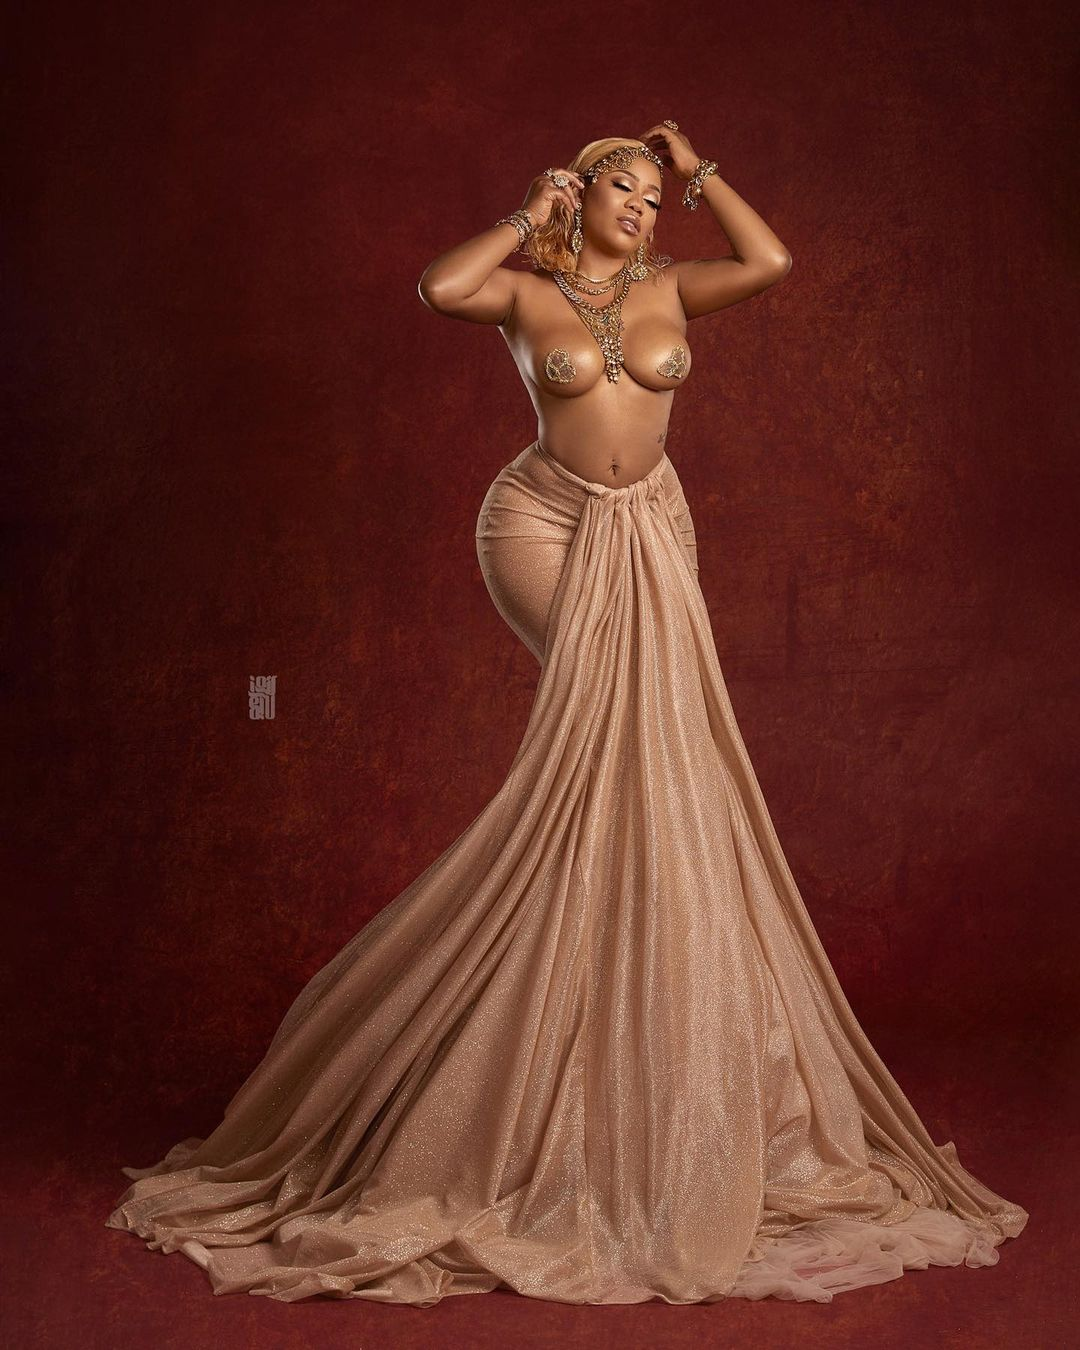 Toyin Lawani goes topless as she celebrates her 39th birthday in a grand style 4